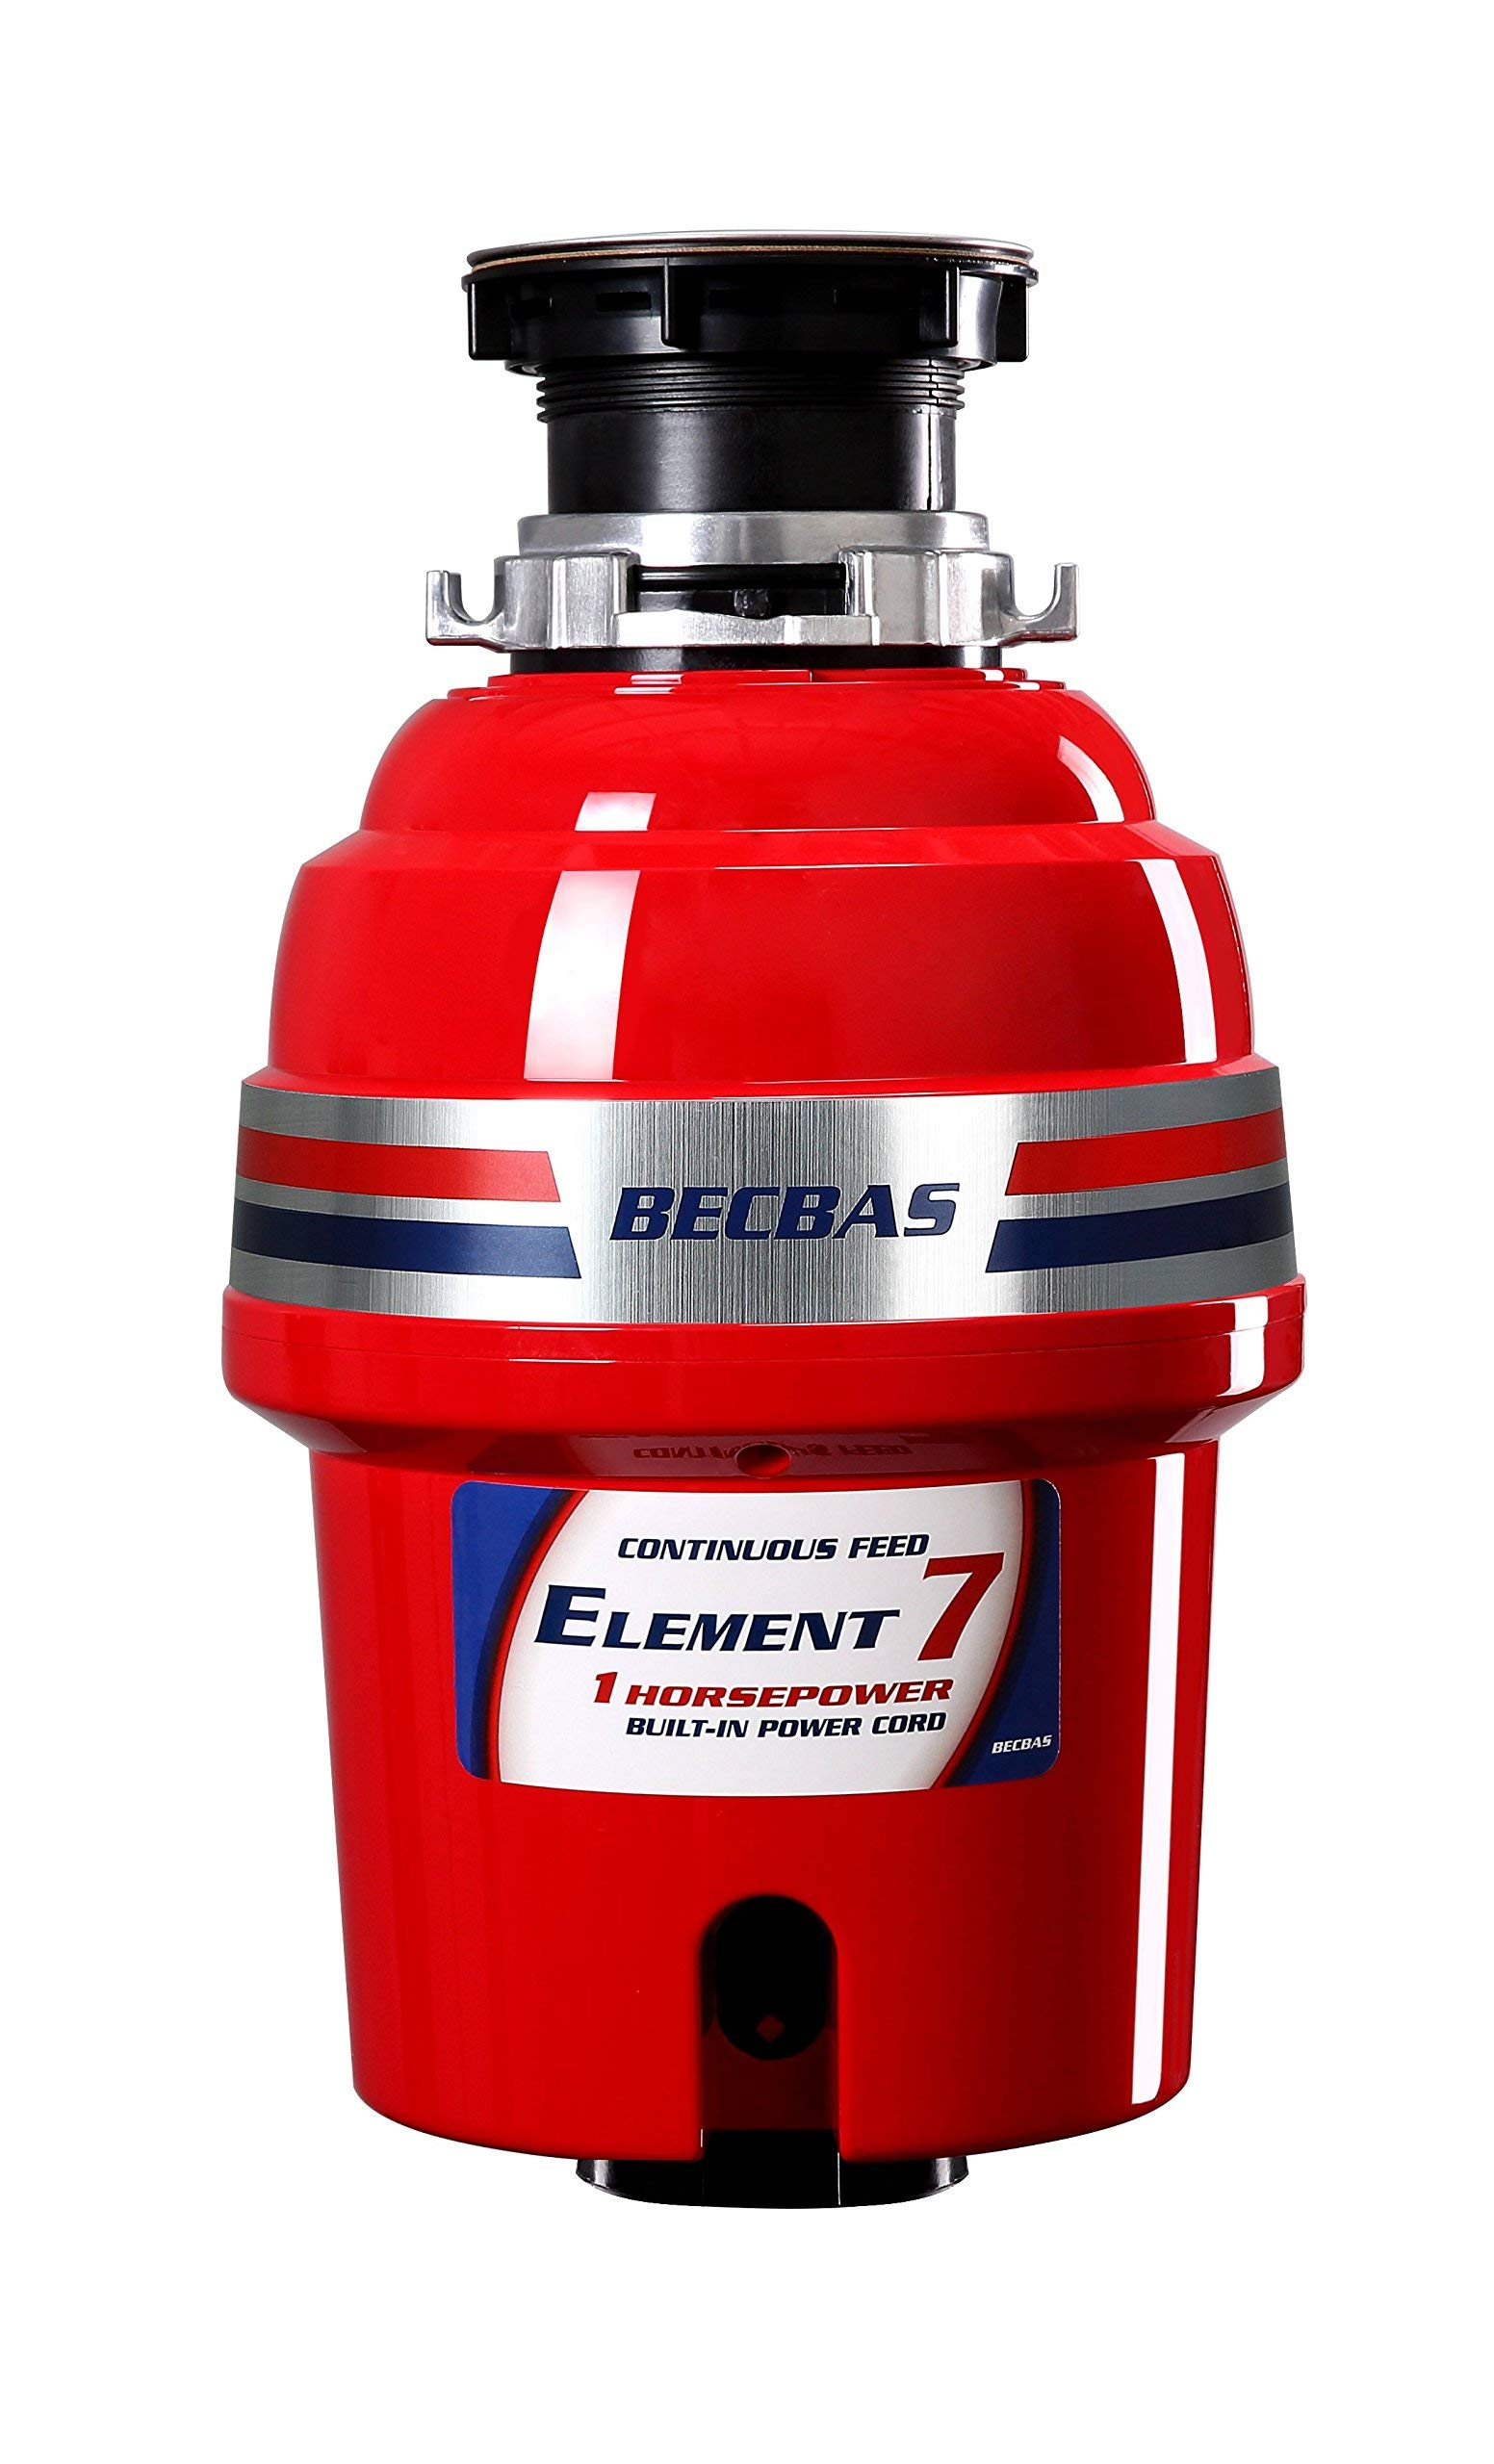 BECBAS ELEMENT 7 Garbage Disposal,1HP 2700RPM Household Food Waste Disposer, With Power Cord (Renewed)